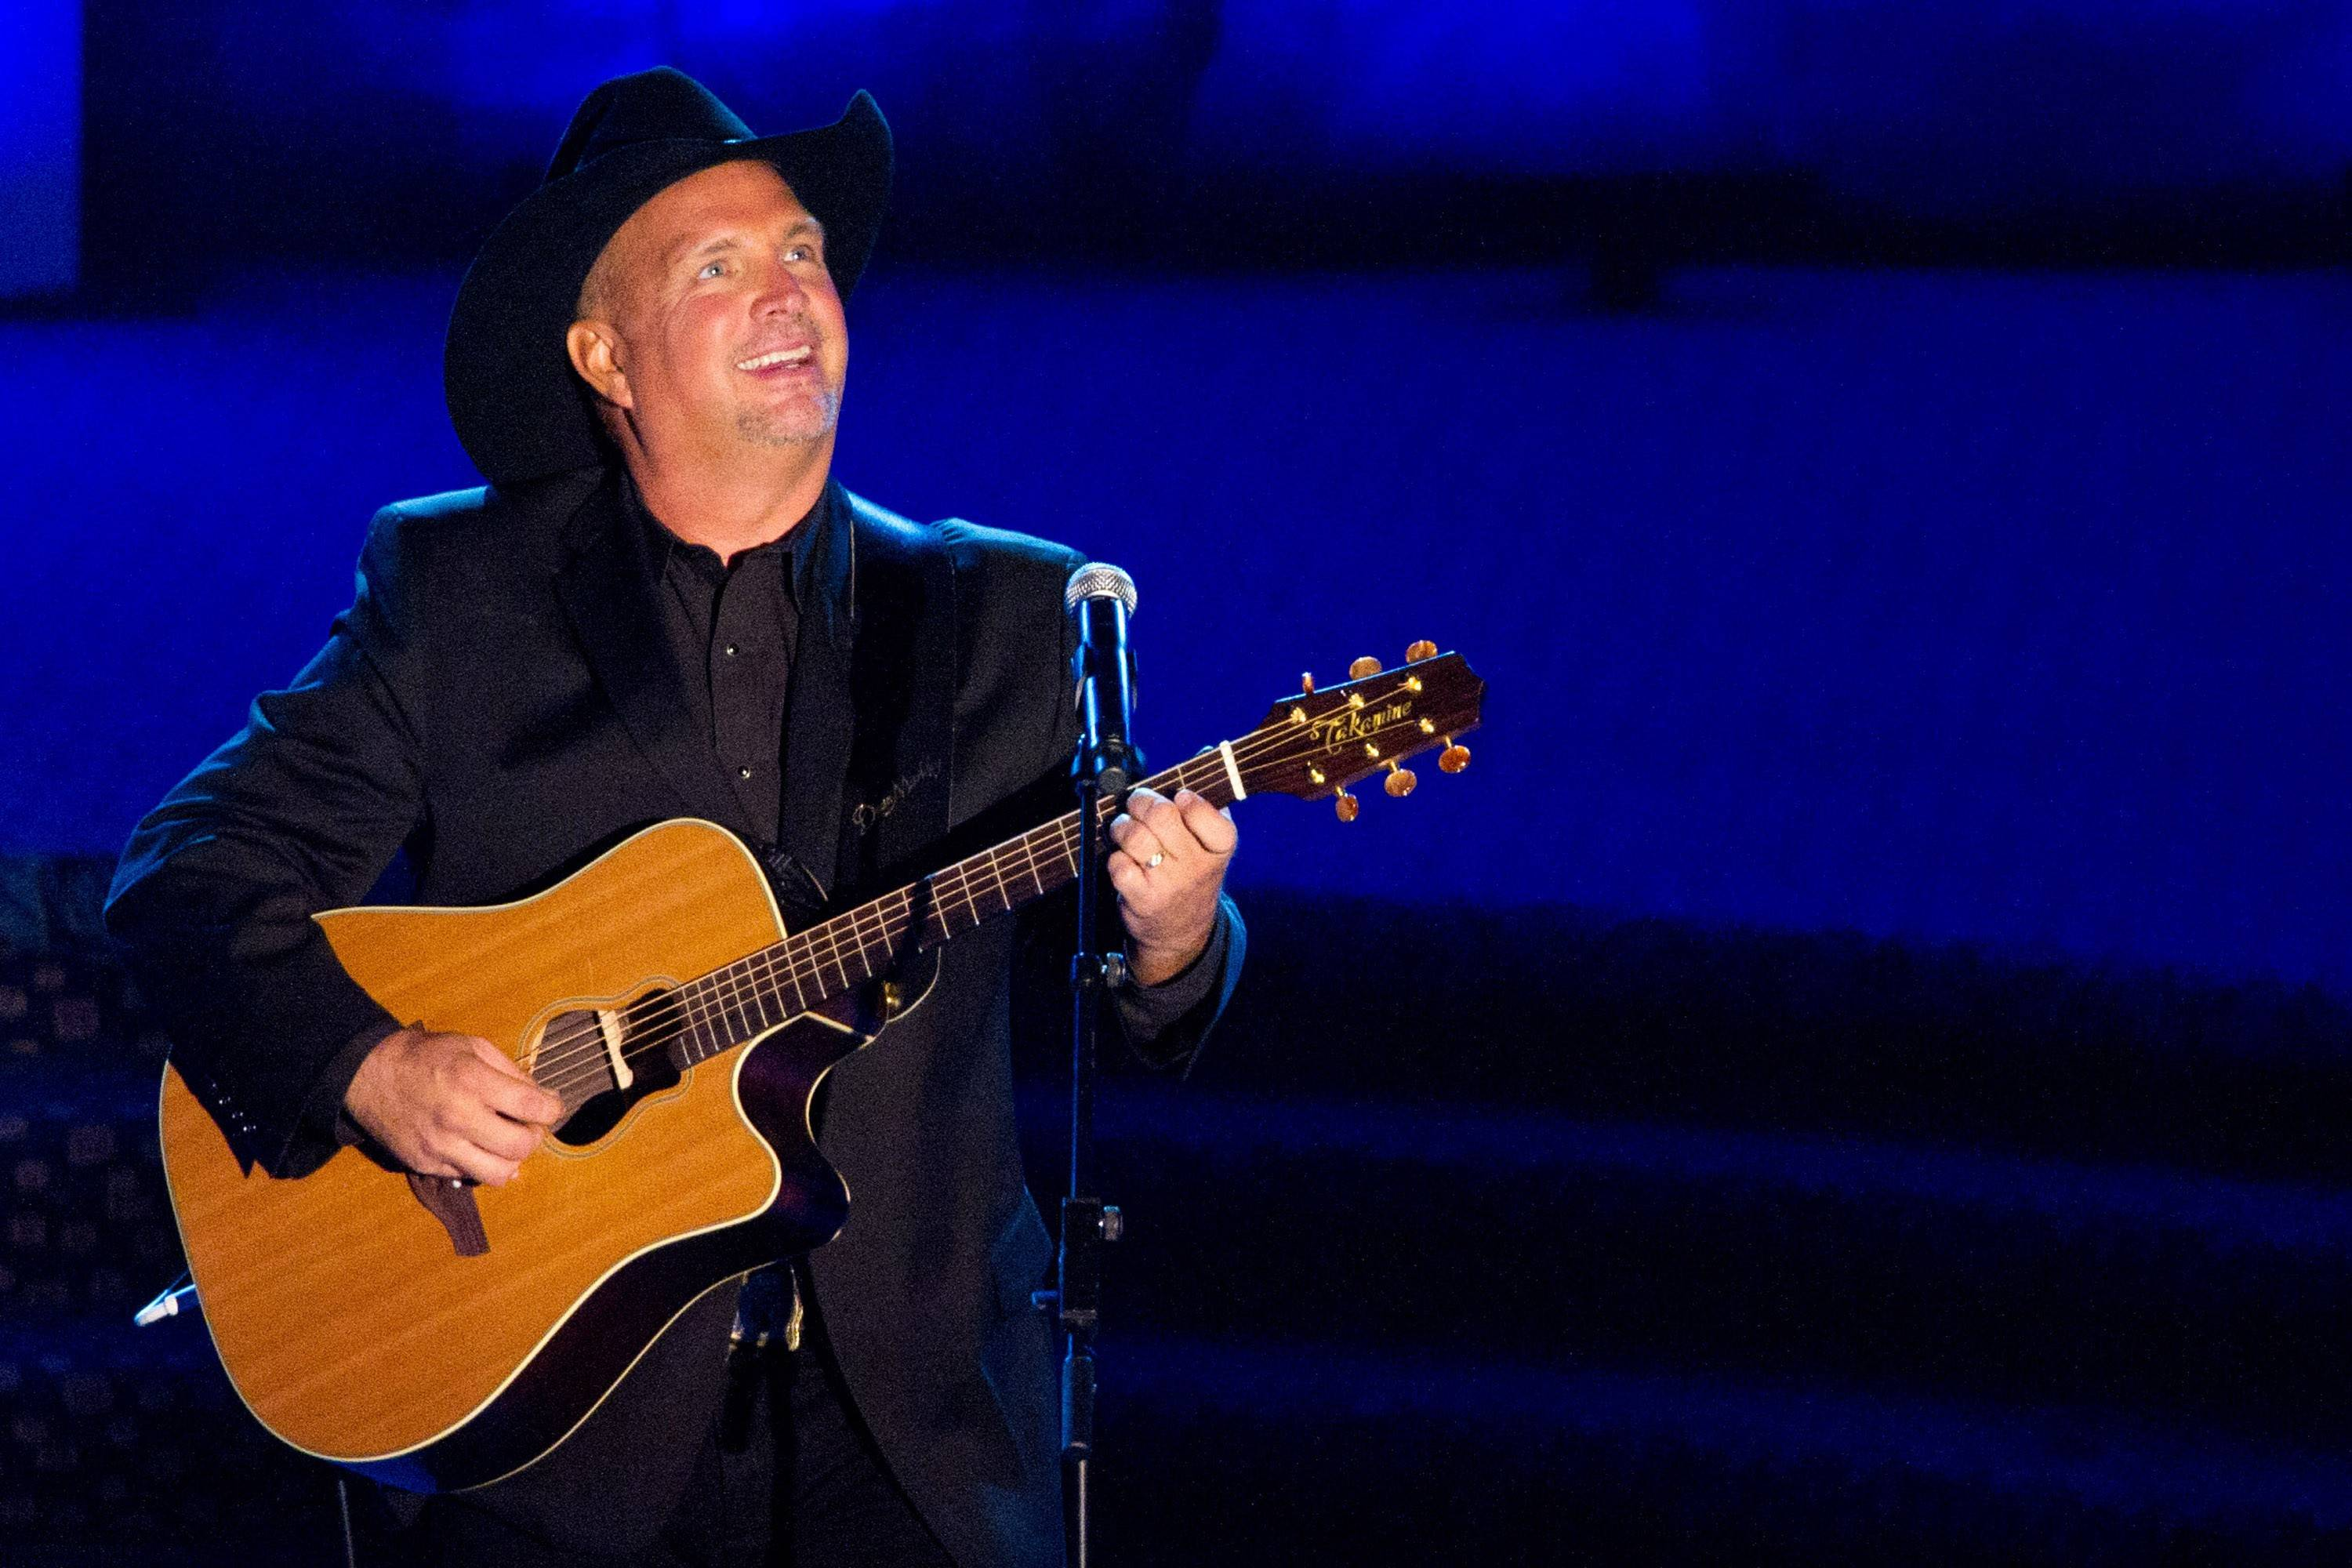 Garth Brooks begins his stretch of 11 concerts at 7:30 Thursday night at Allstate Arena in Rosemont.